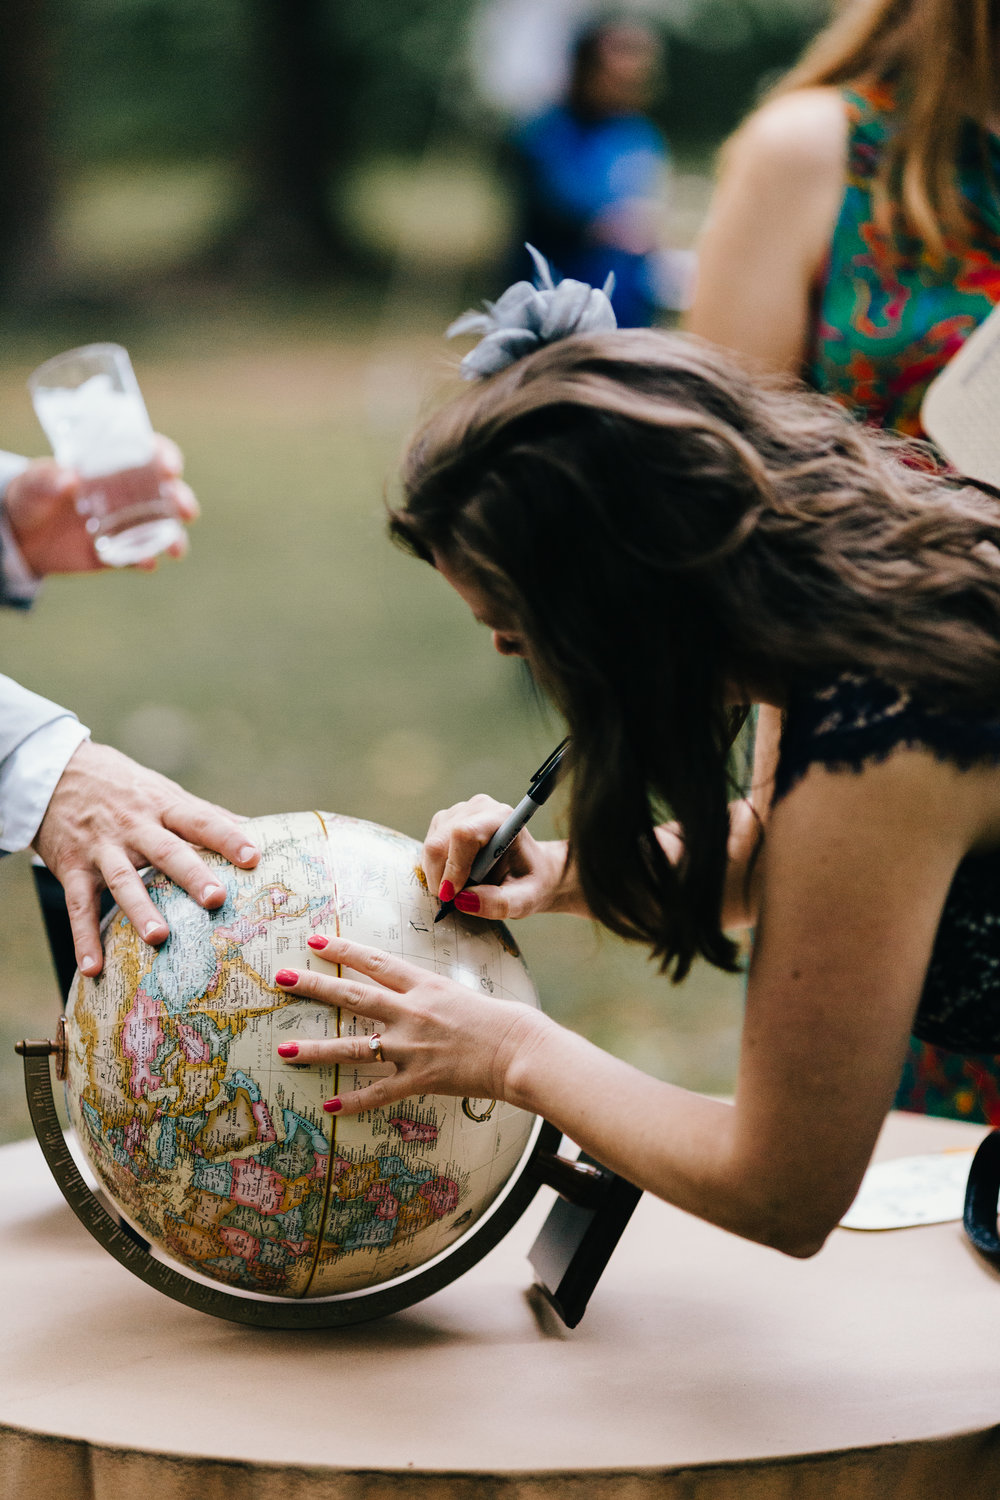 Erin Morrison Photography Tennessee wedding guest marking globe with marker